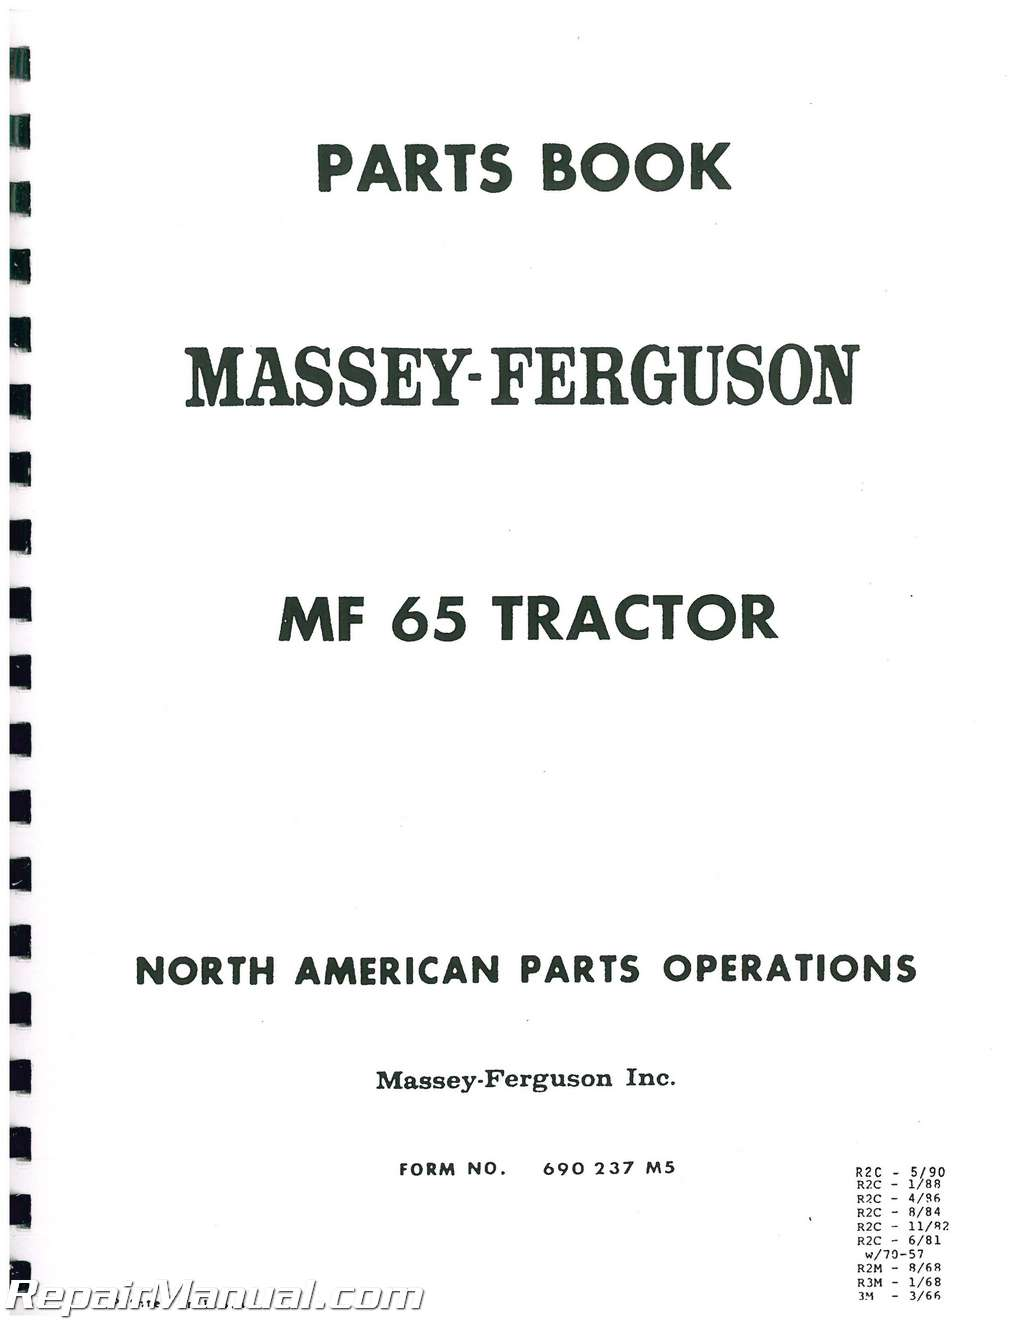 Massey Ferguson 65 Parts Diagram : Massey ferguson mf glpdsl parts manual